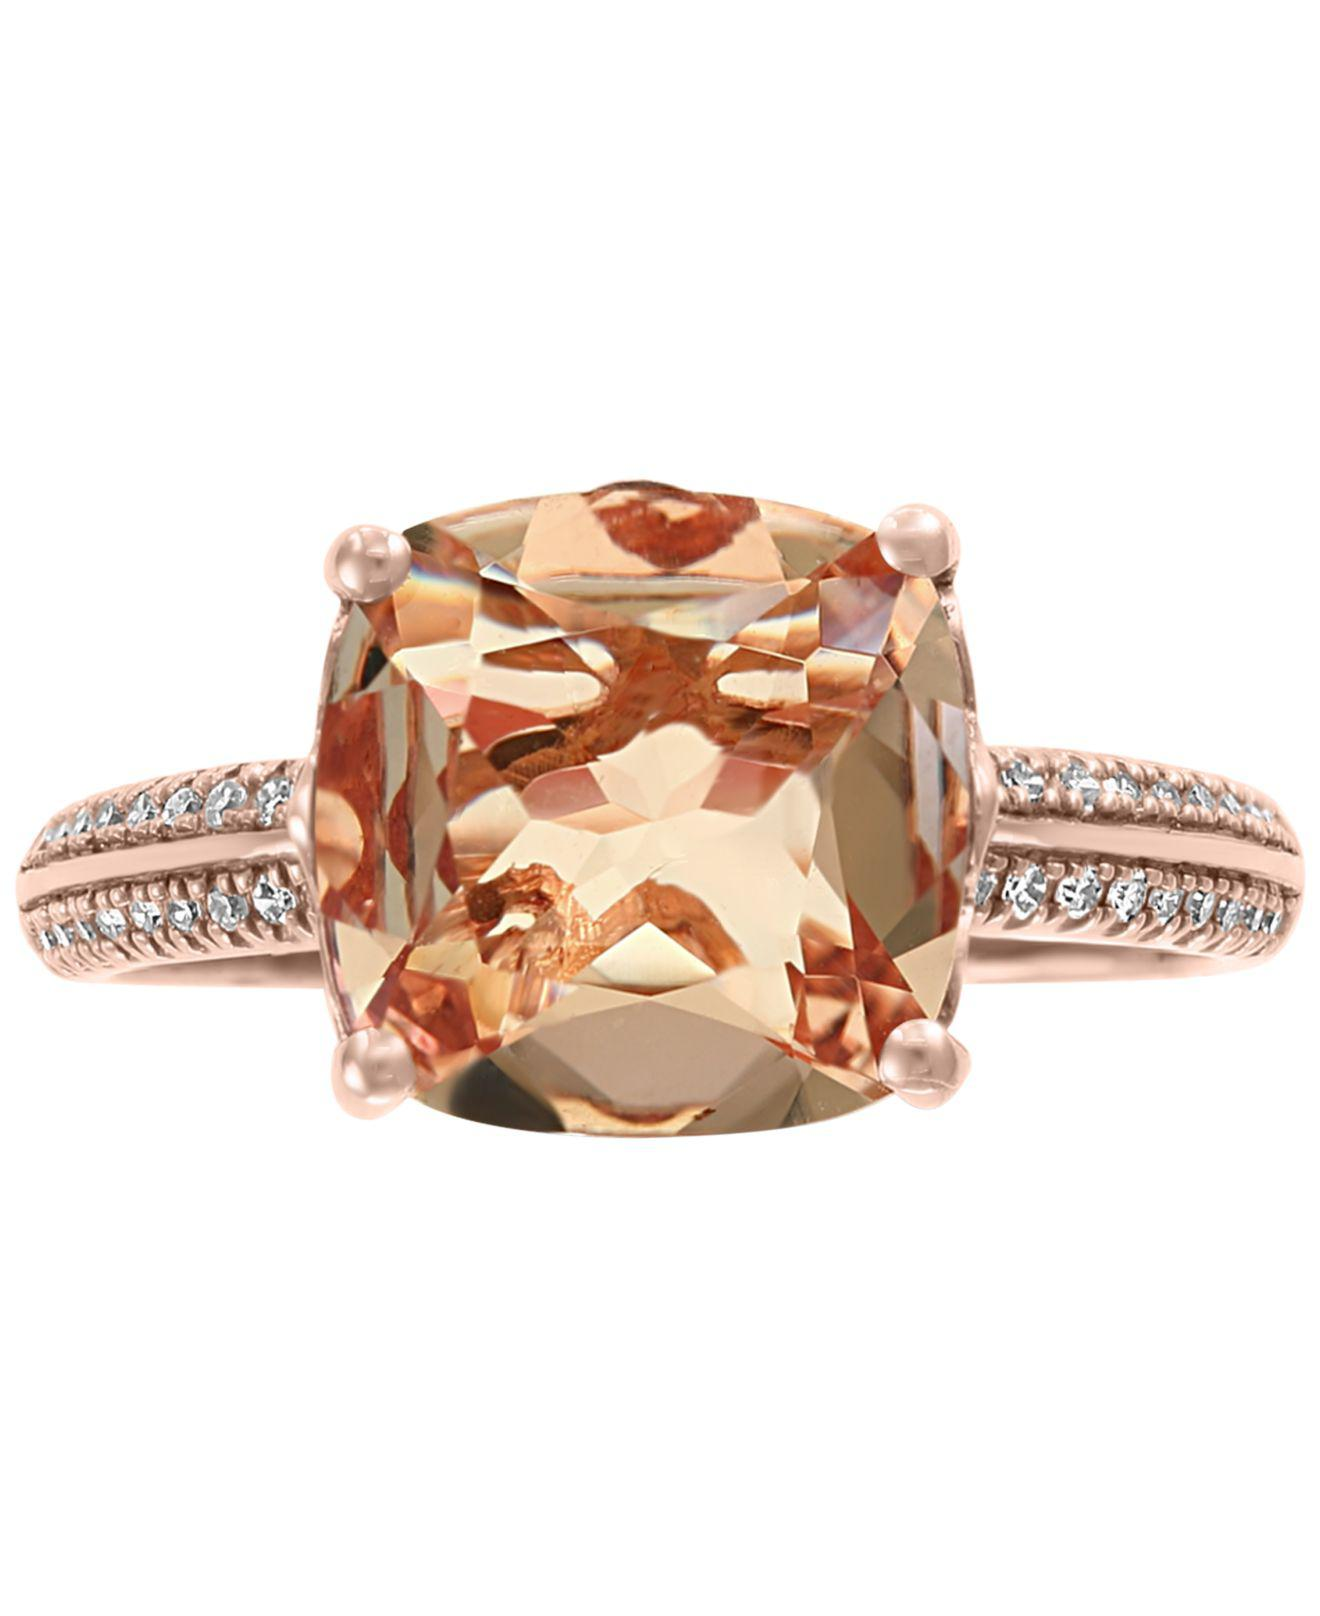 a163562ef1c2ce Lyst - Effy Collection Effy® Morganite (2-9 10 Ct. T.w.)   Diamond (1 8 Ct.  T.w.) Ring In 14k Rose Gold in Metallic